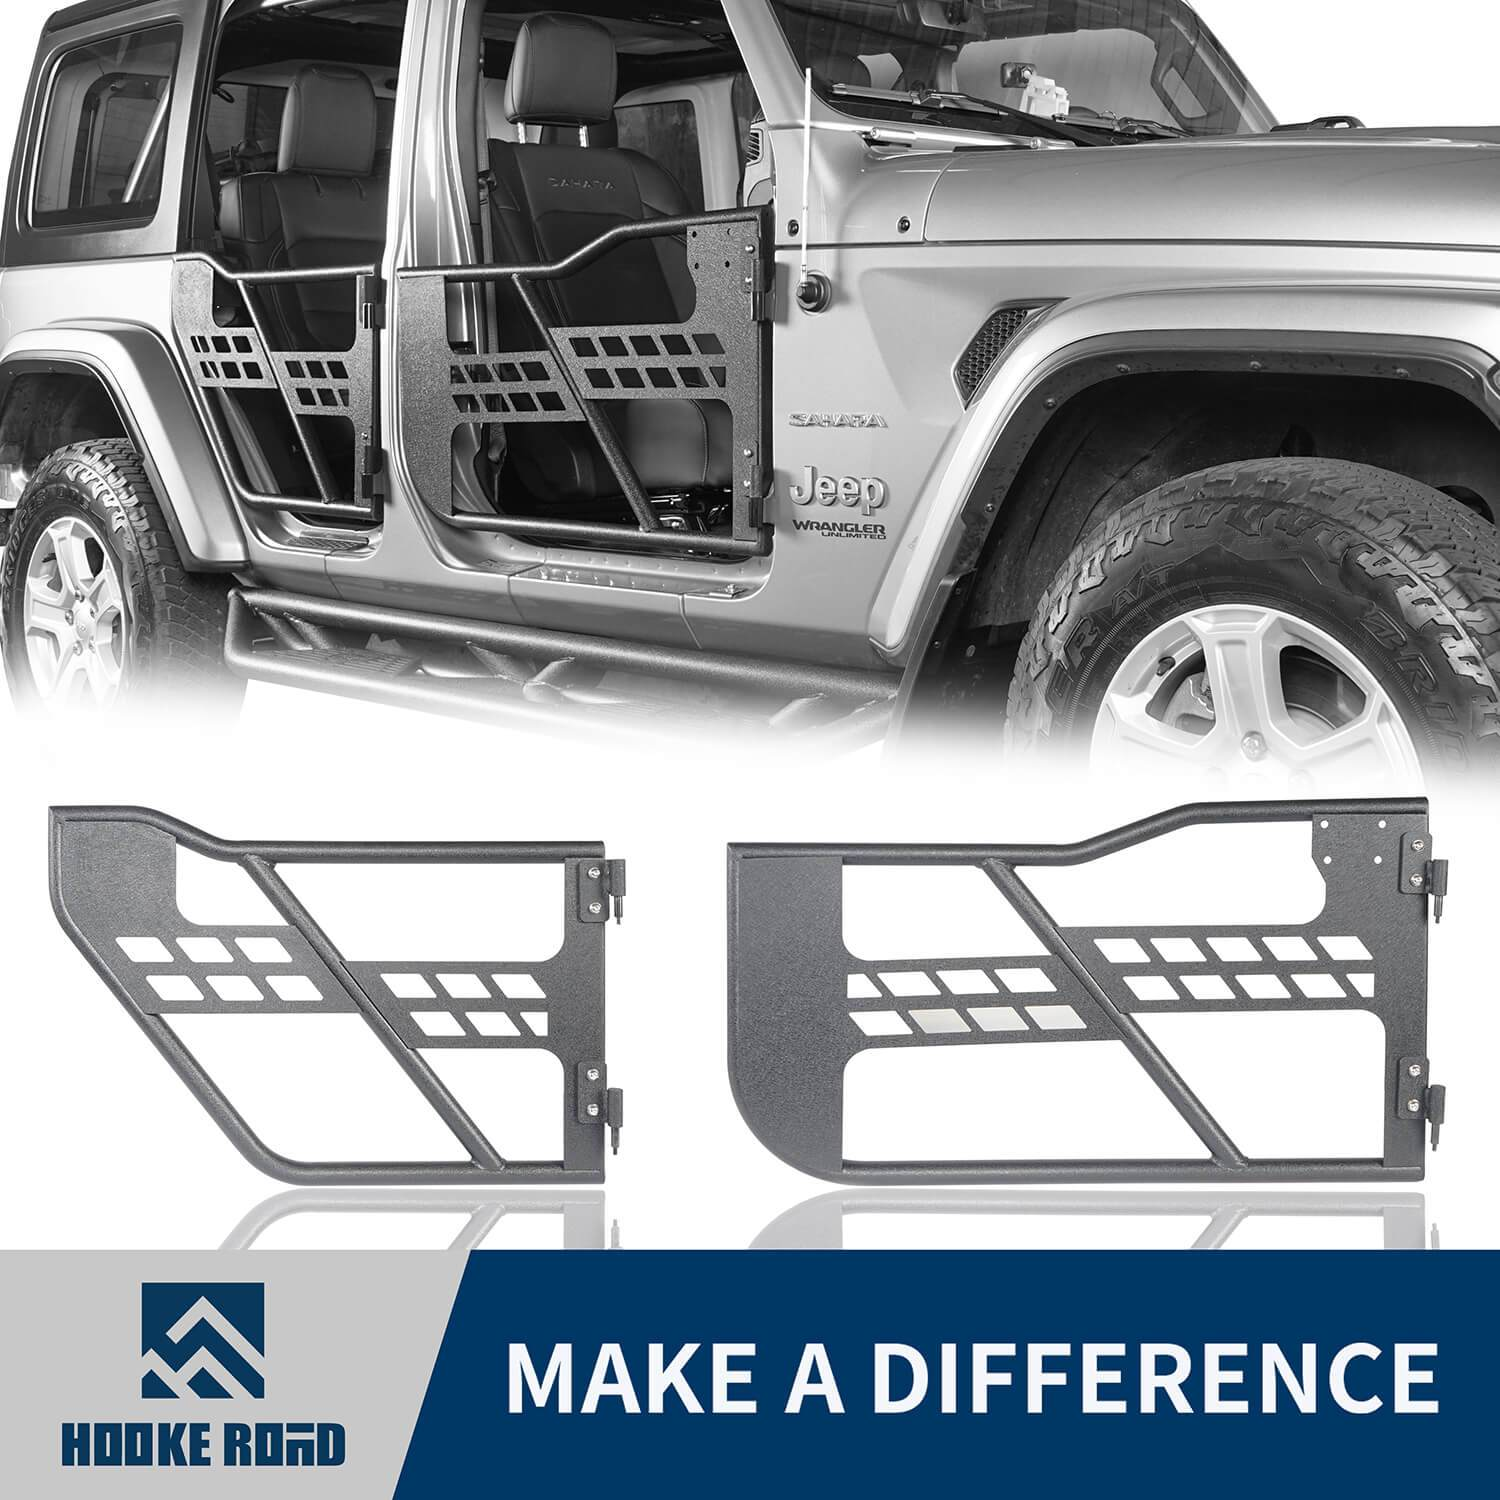 2019 Jeep Wrangler Unlimited Interior: Show Off 18-19+ New Style Jeep JL Parts, I Found, Front